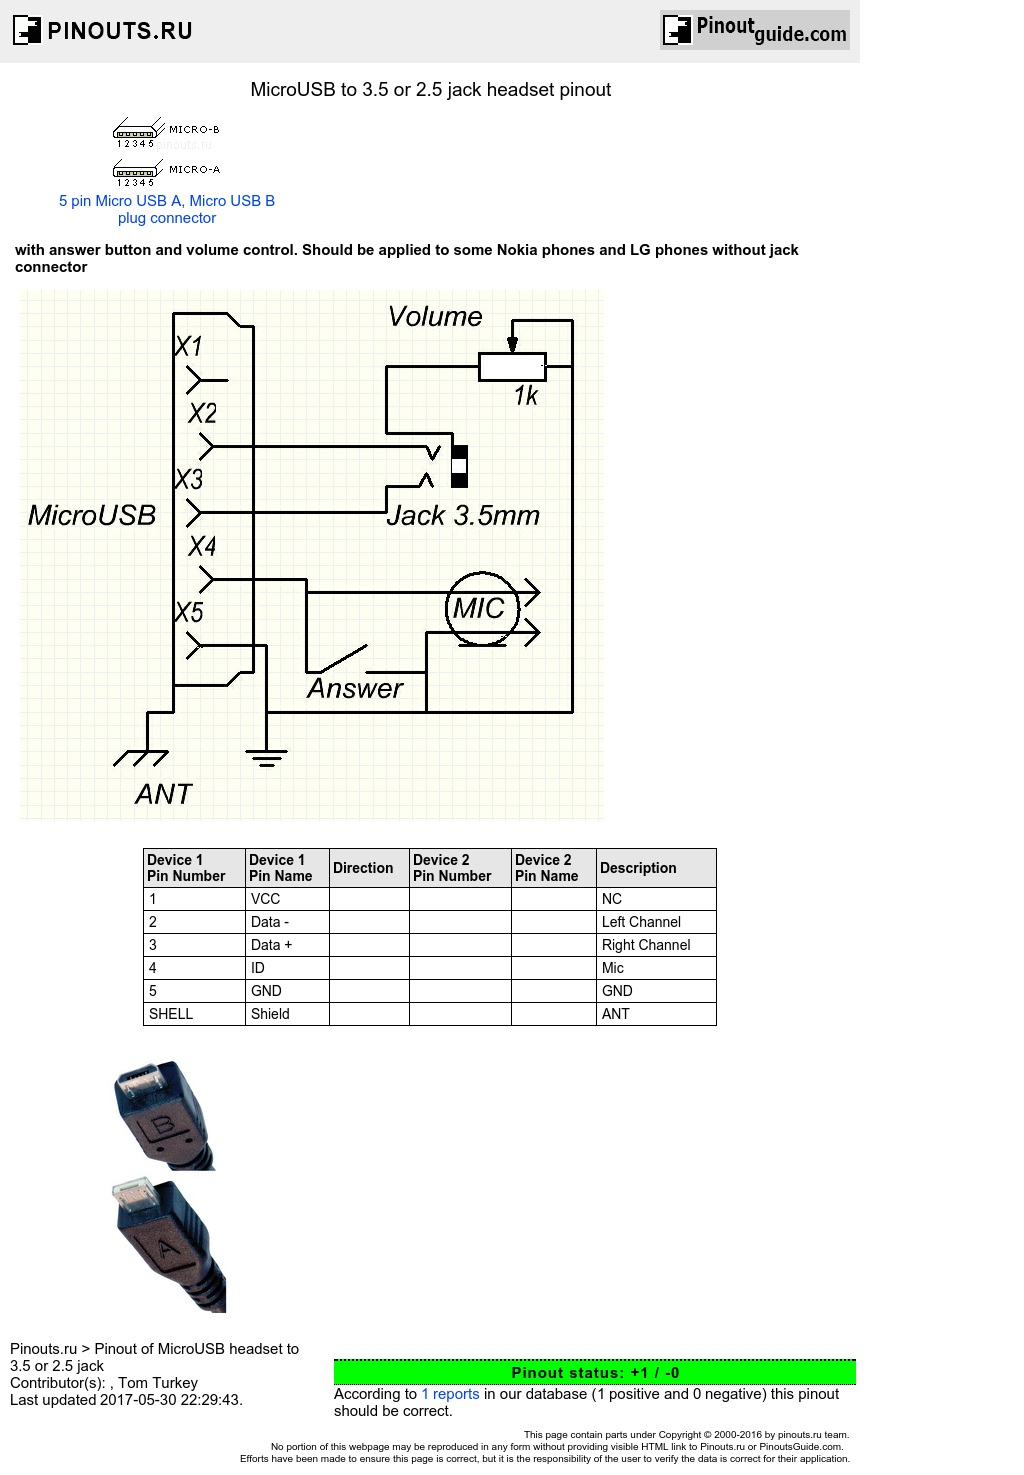 Microusb To 3.5 Or 2.5 Jack Headset Pinout Diagram @ Pinoutguide - Usb Wiring Diagram Micro